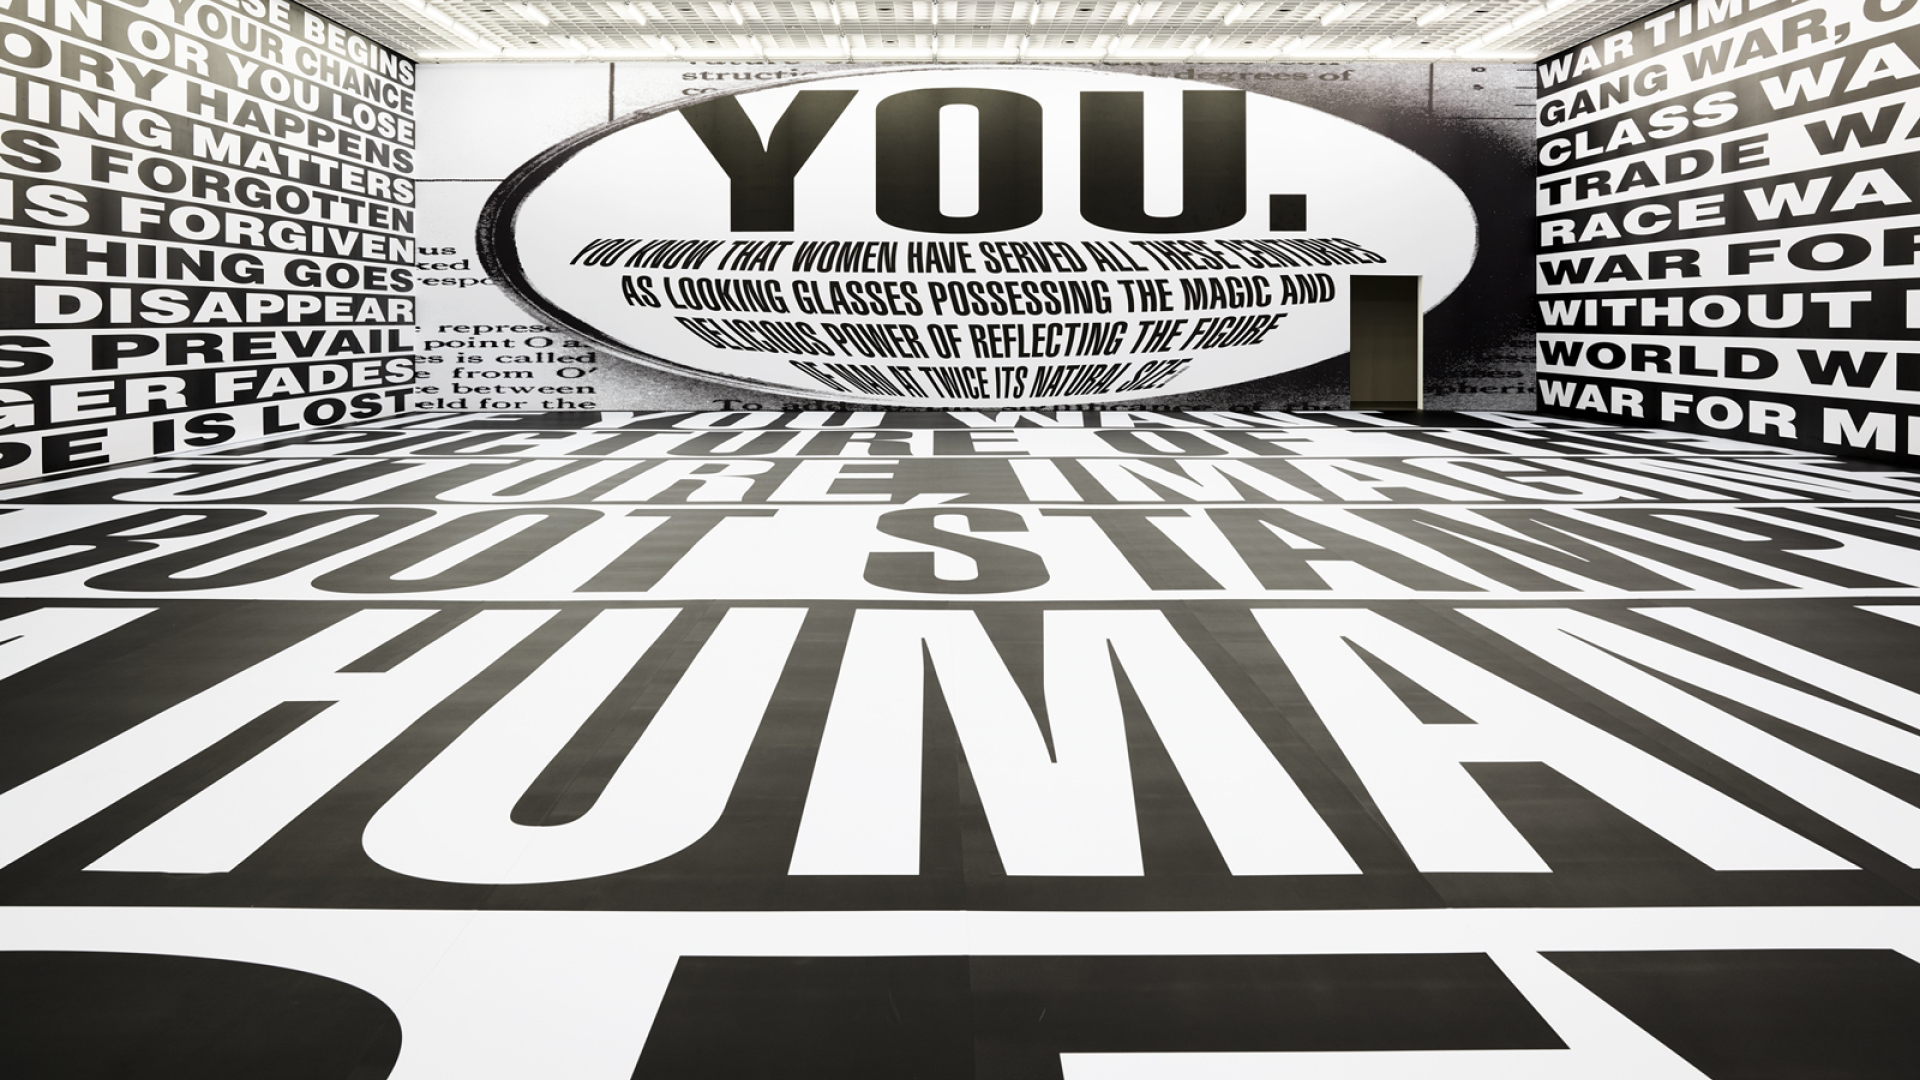 Barbara Kruger, Untitled (Forever), 2017, Digital print on vinyl wallpaper, dimensions variable (570 x 2,870 x 1,830 cm) | Barbara Kruger | STIRworld